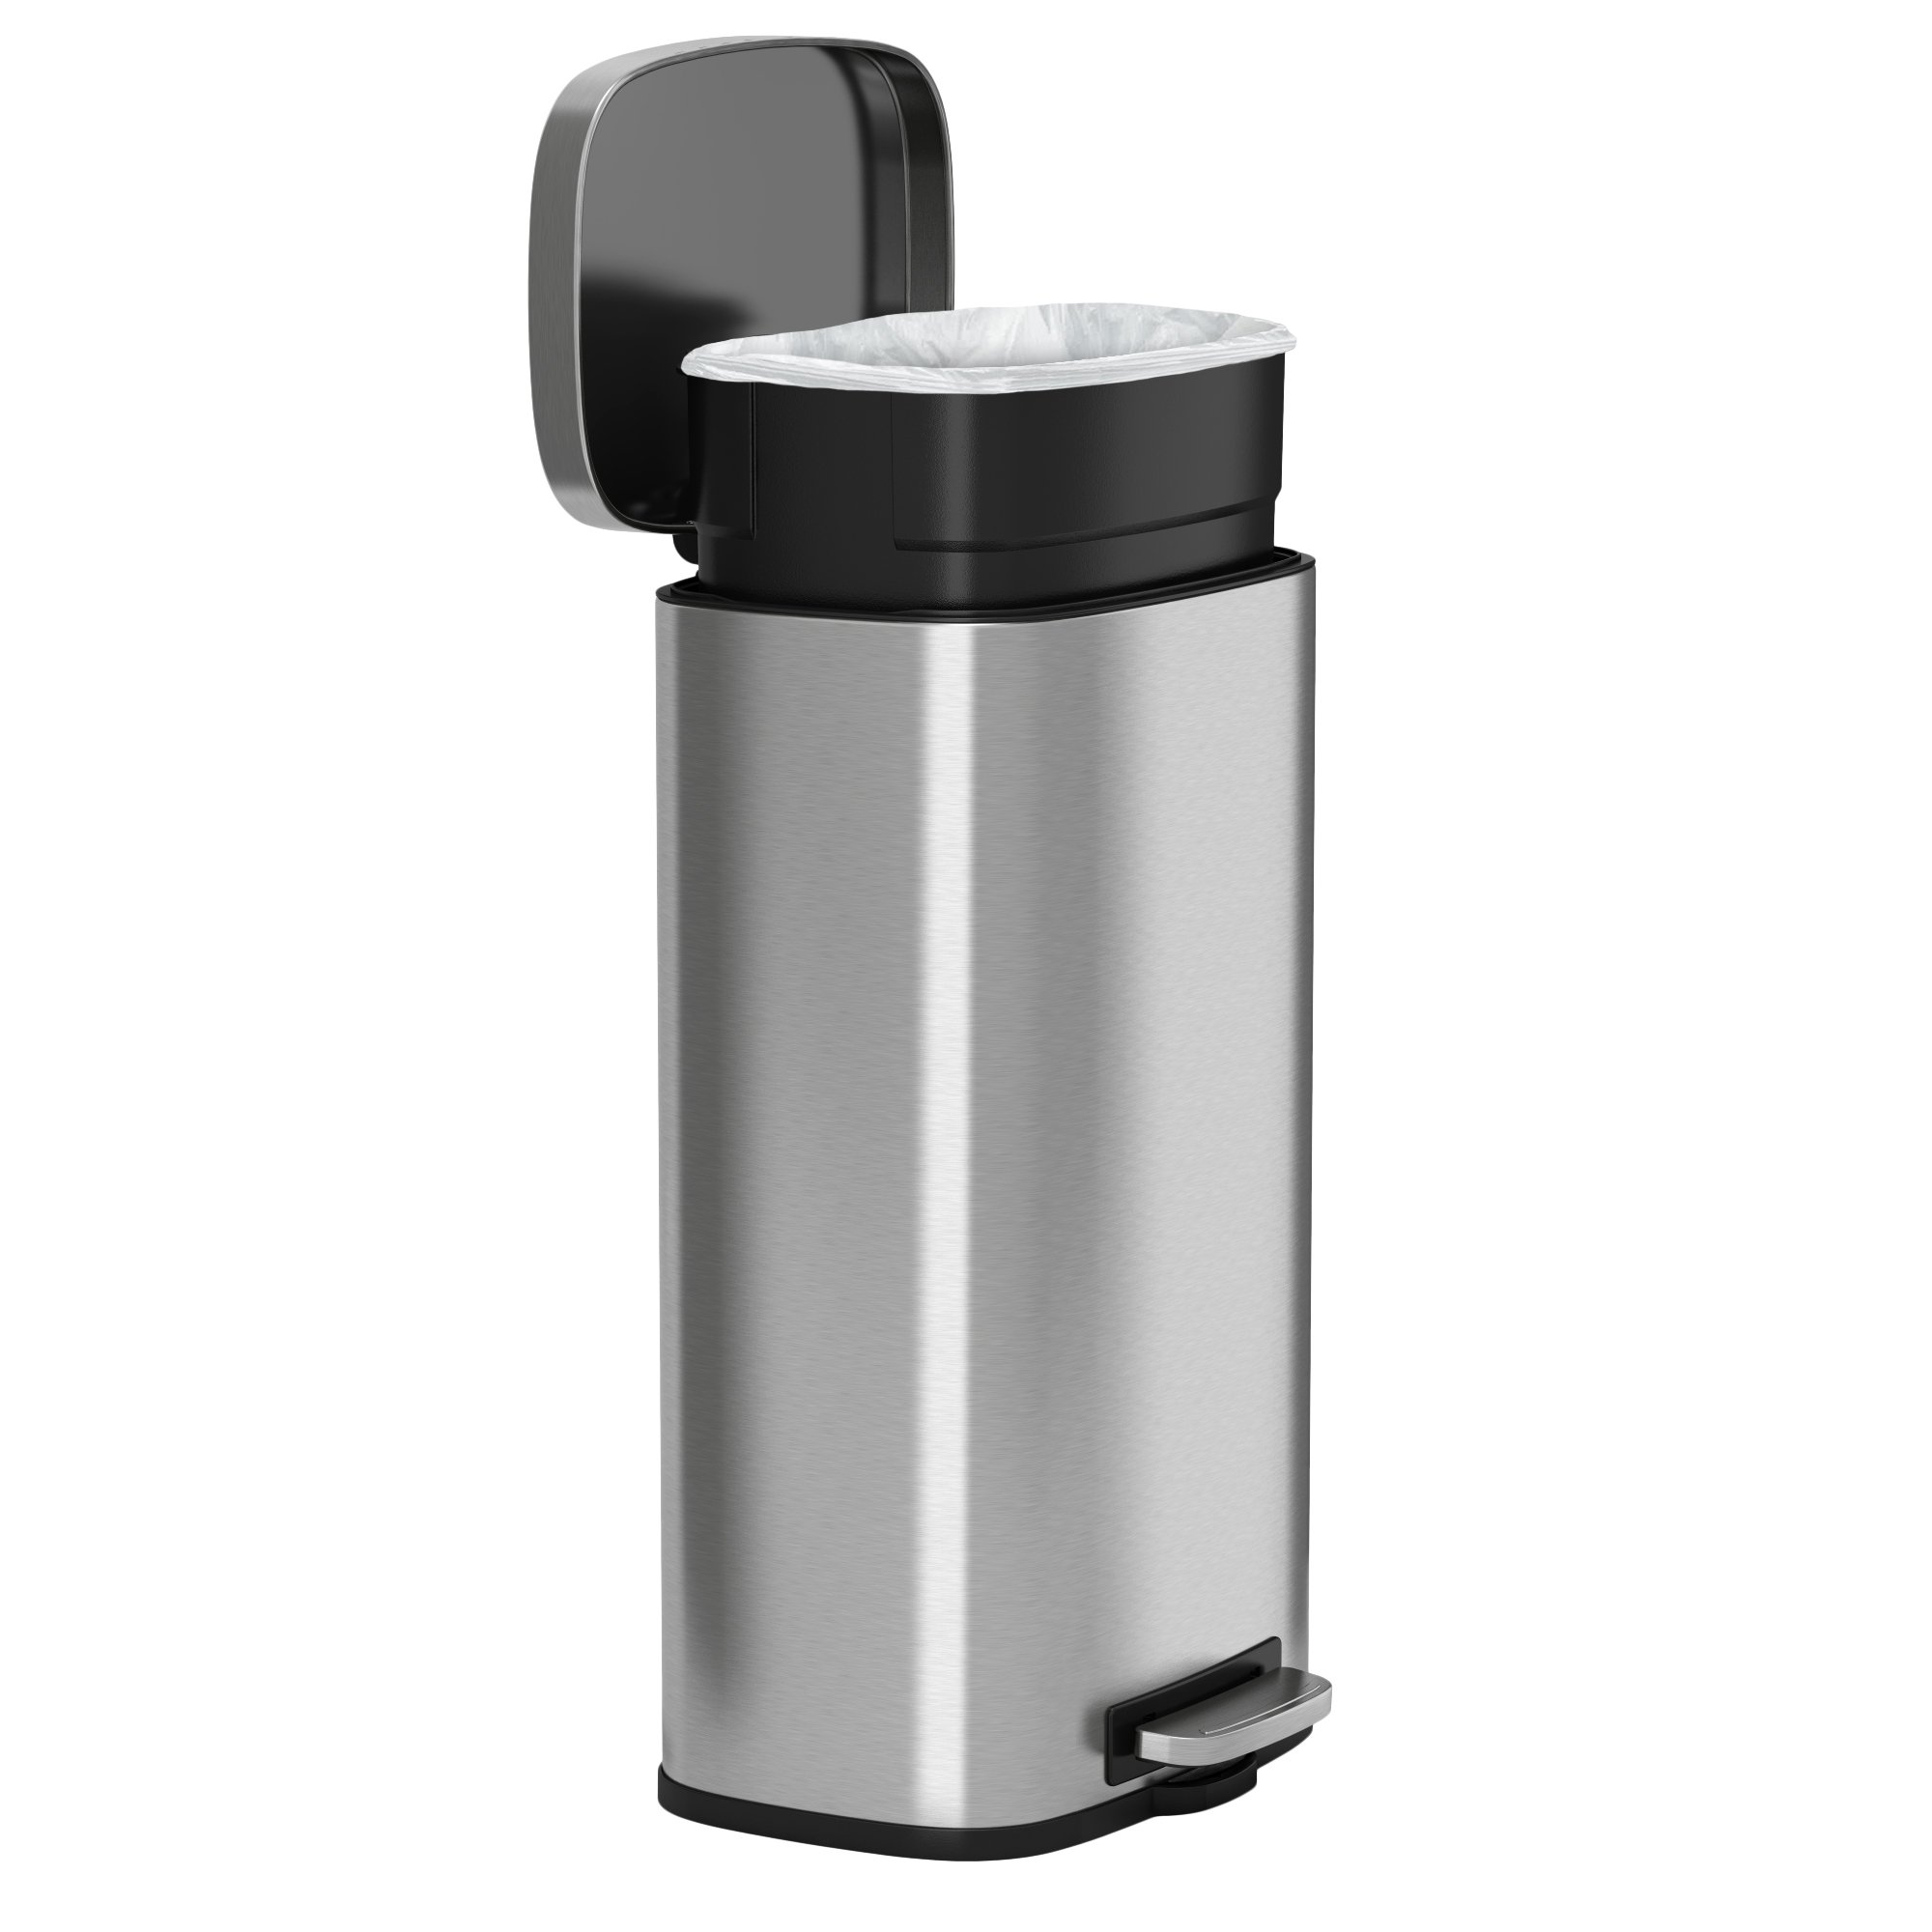 iTouchless SoftStep 8 Gallon Stainless Steel Step Trash Can, 30 Liter Pedal Kitchen Trash Can Perfect for Office, Home and Kitchen by iTouchless (Image #2)